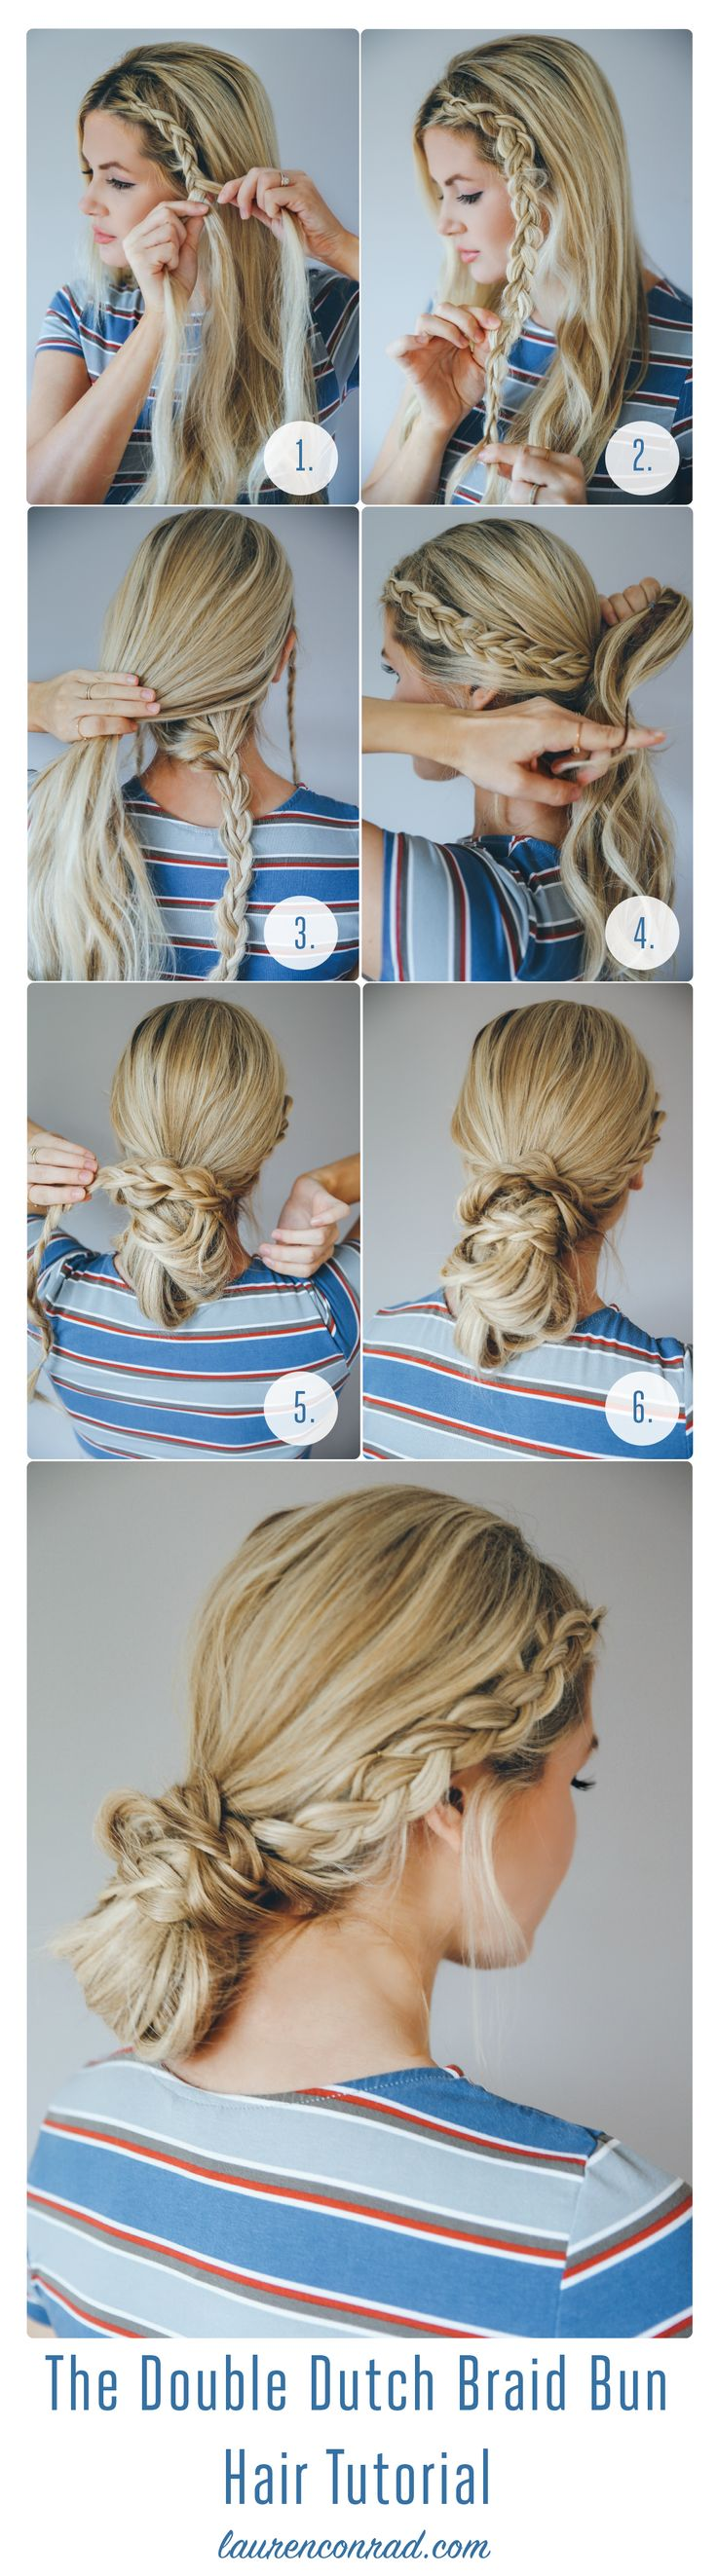 Miraculous 1000 Ideas About Easy Braided Hairstyles On Pinterest Types Of Short Hairstyles For Black Women Fulllsitofus